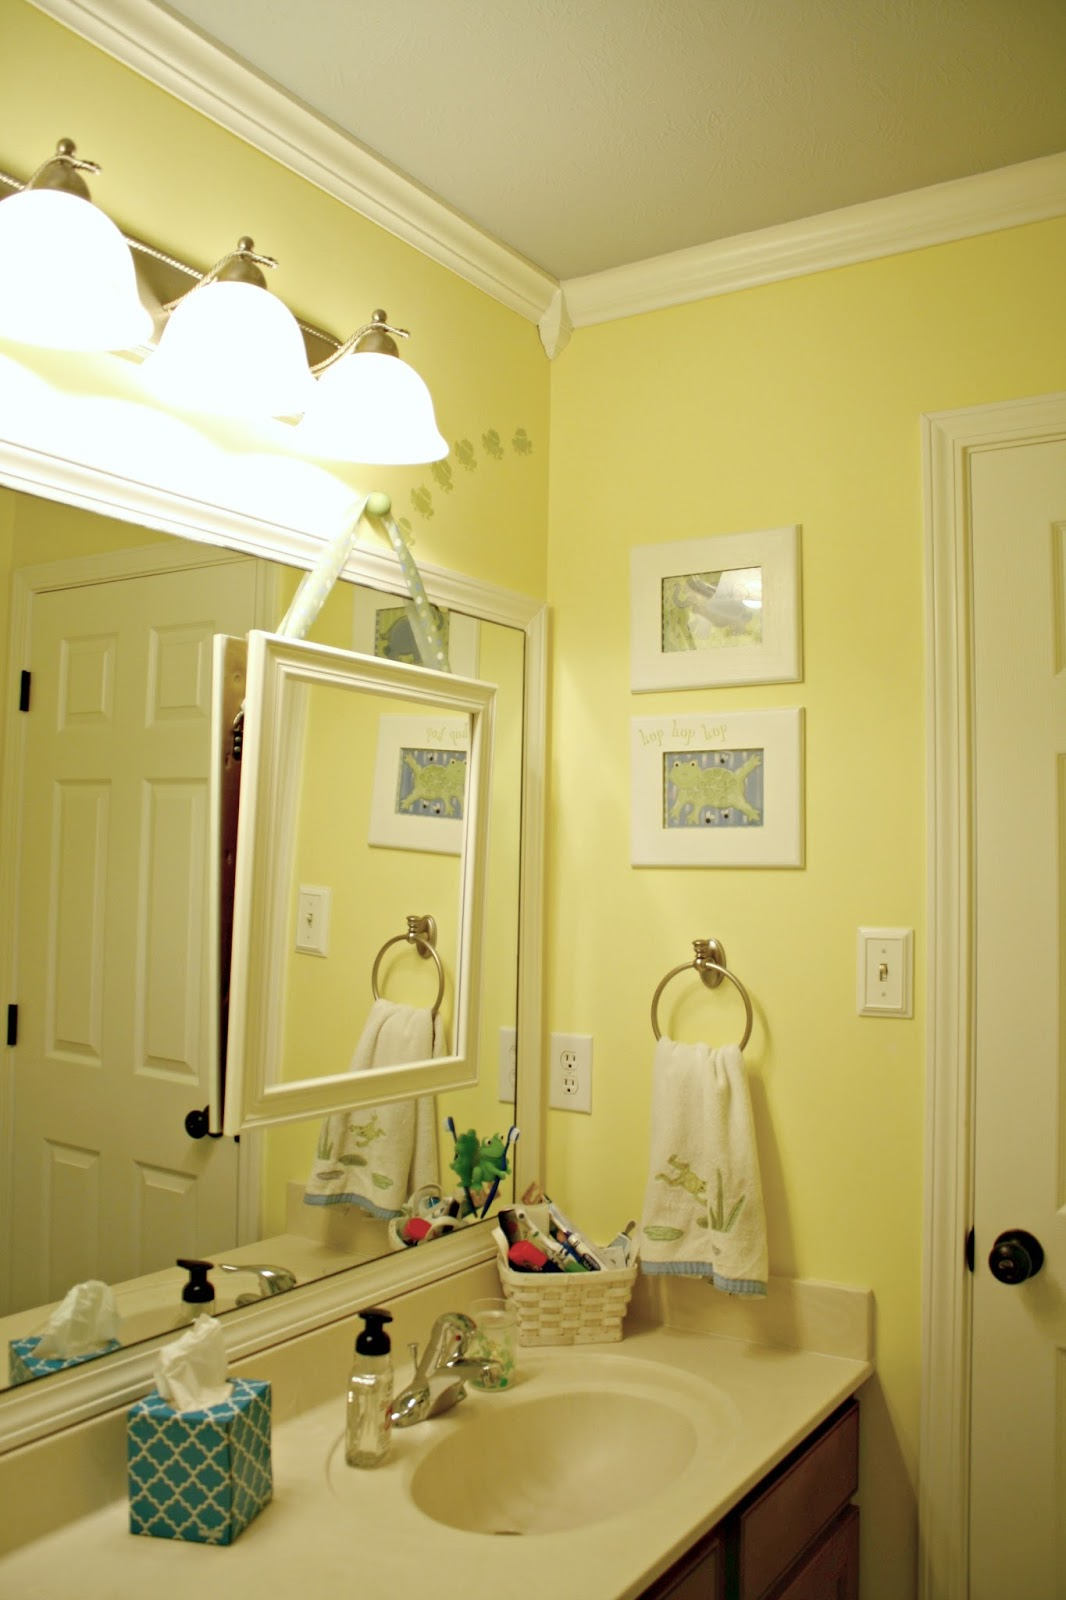 A Simple Bathroom Makeover (Paint is the Bomb!) from Thrifty Decor Chick